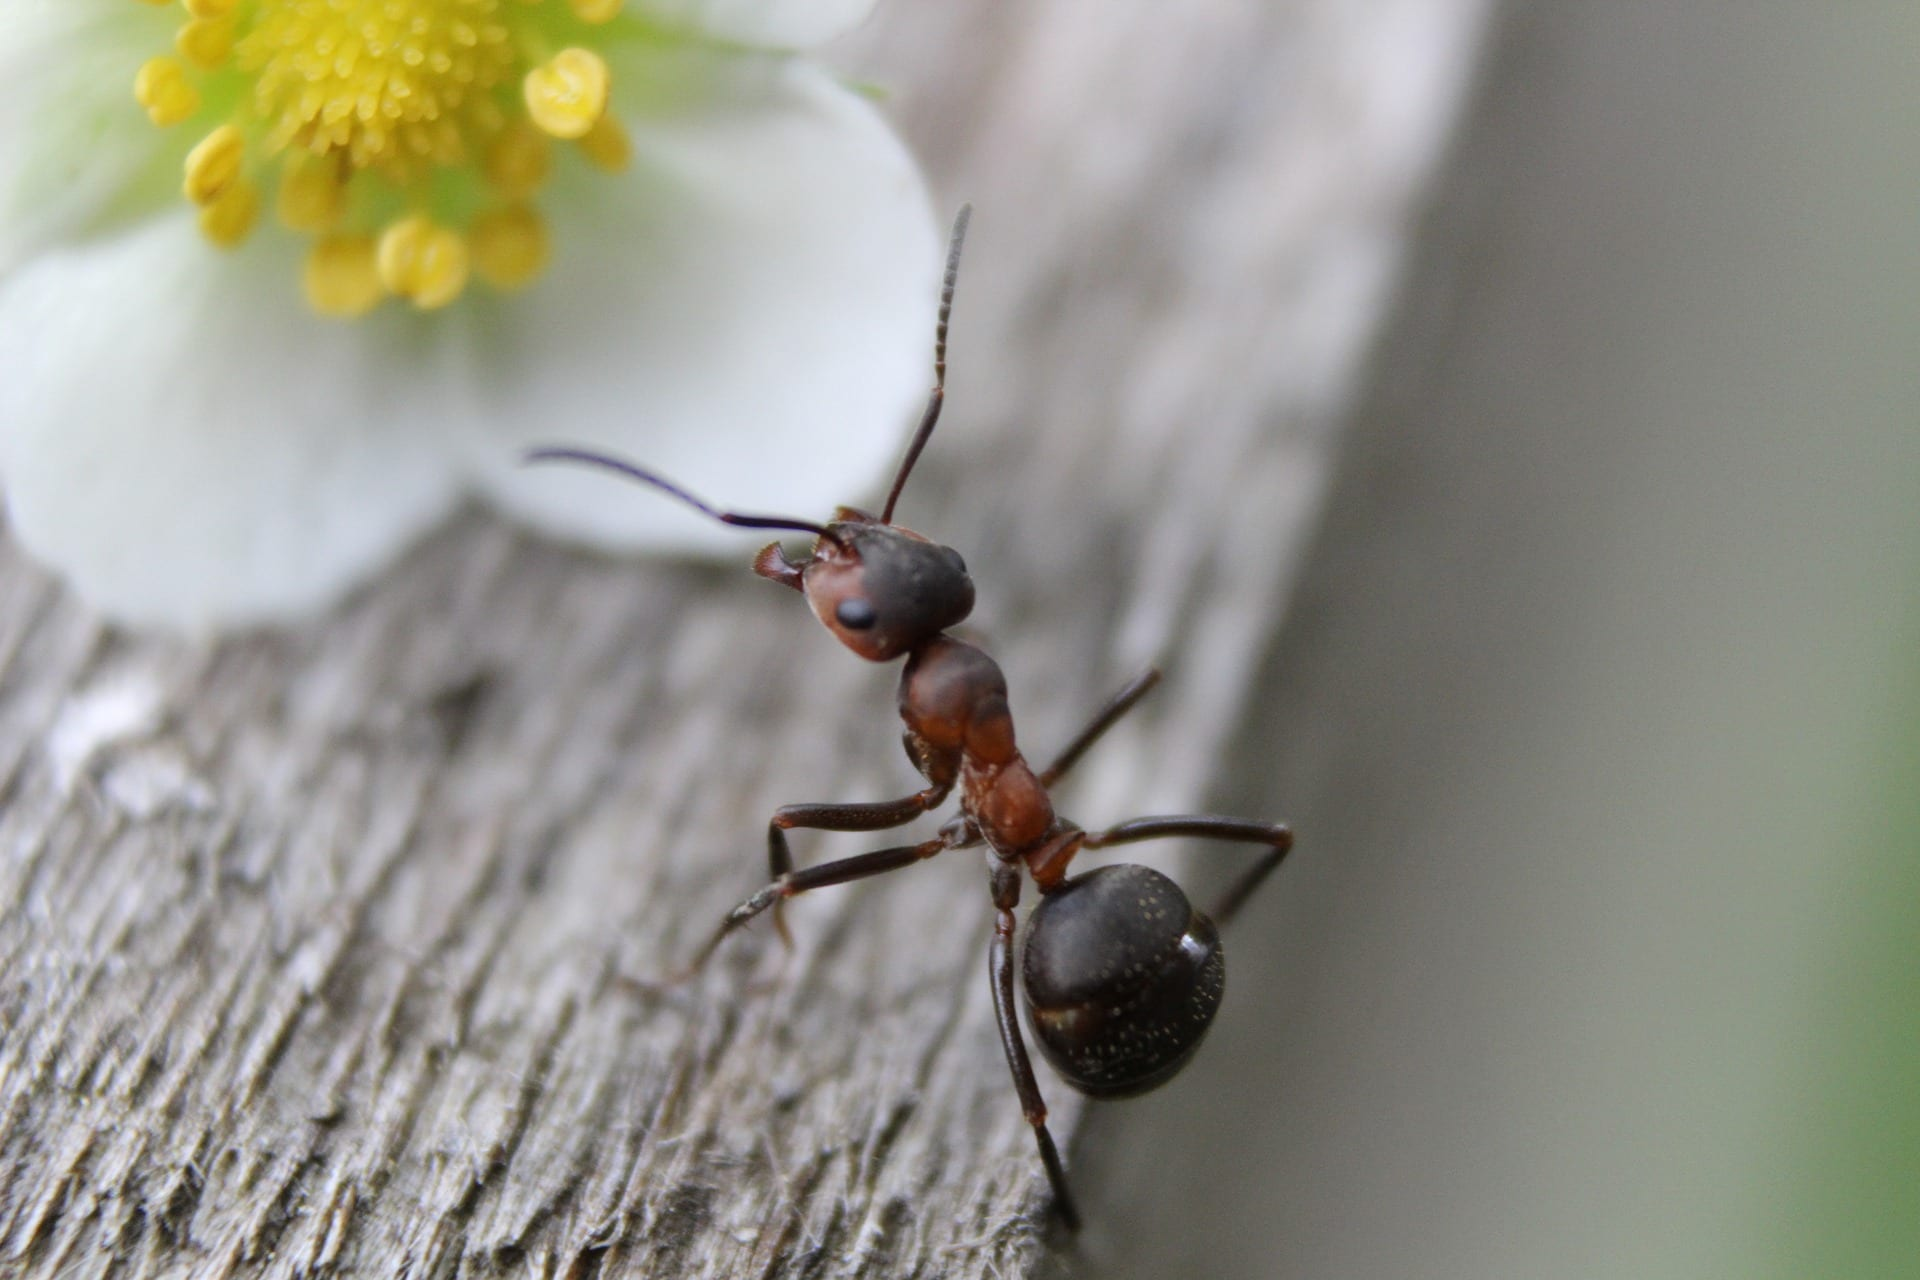 Ant on a flower